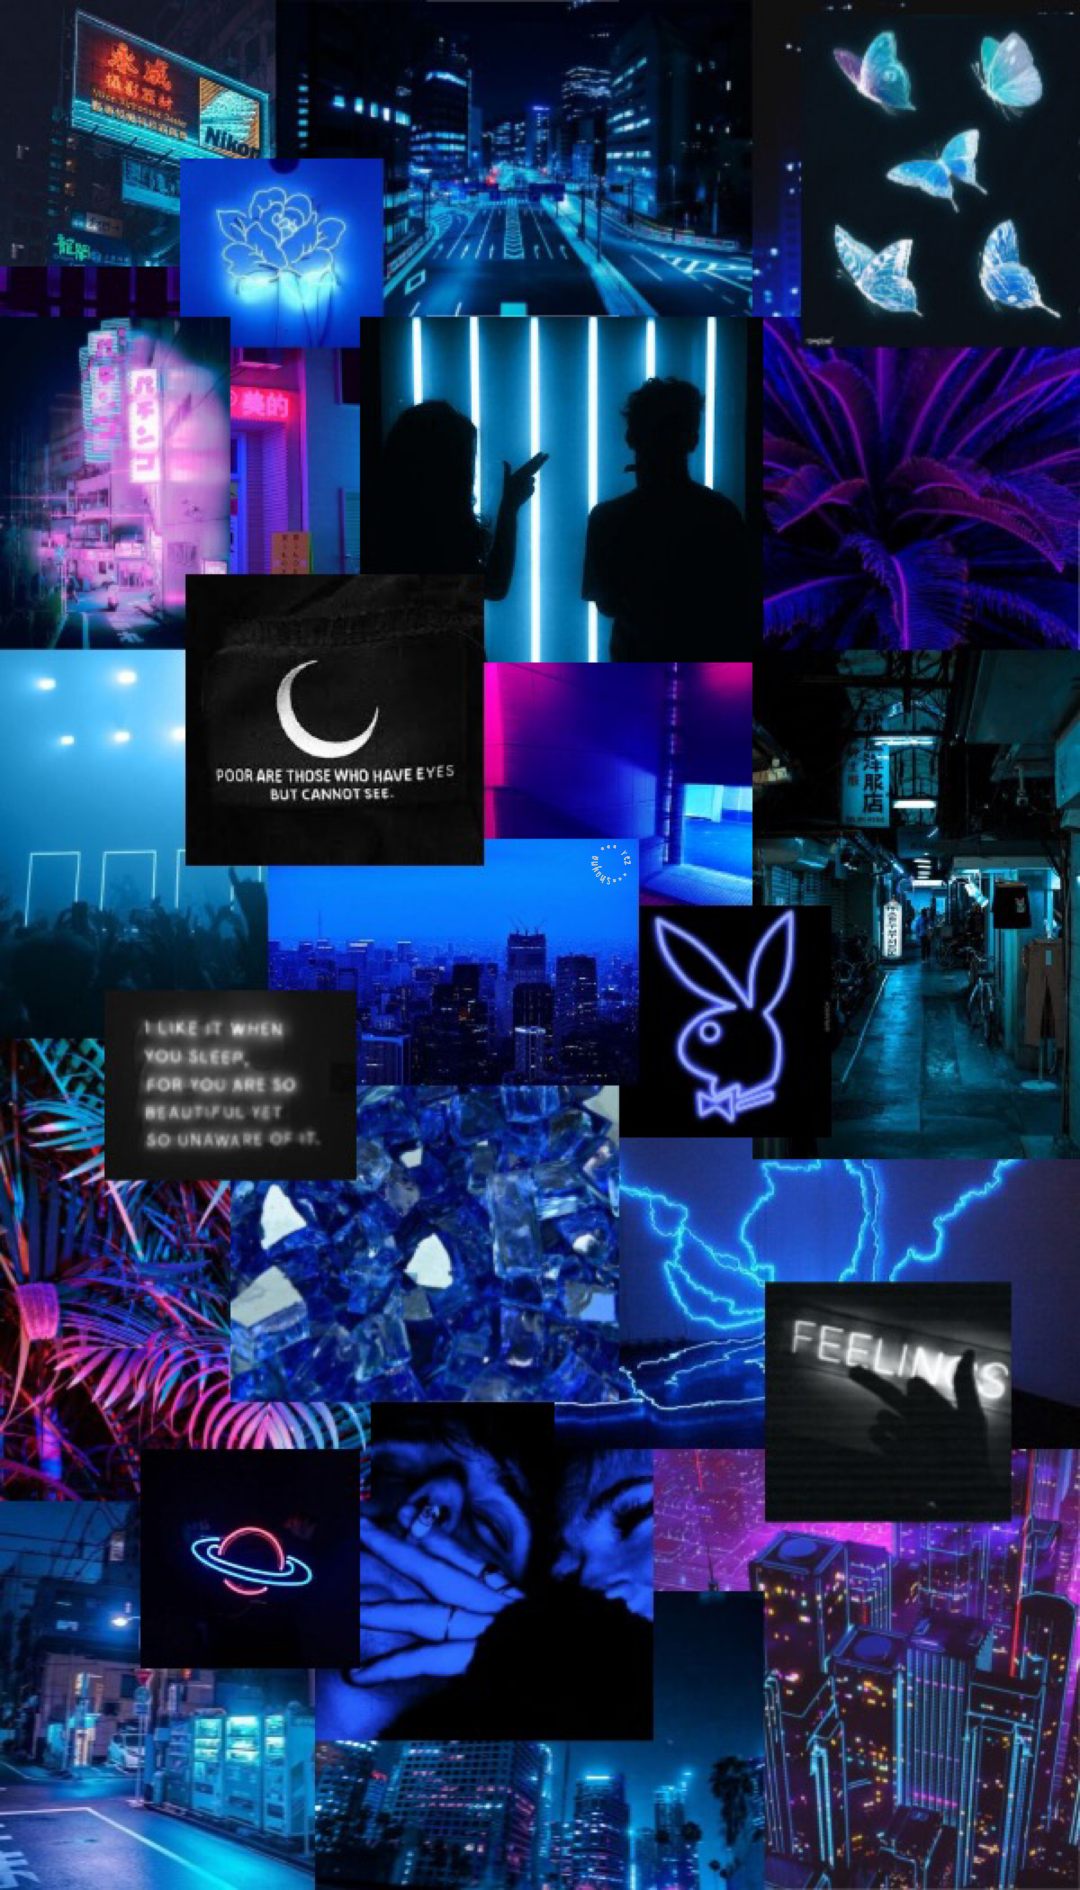 neon blue aesthetic iphone wallpaper in 2020 | Blue ...